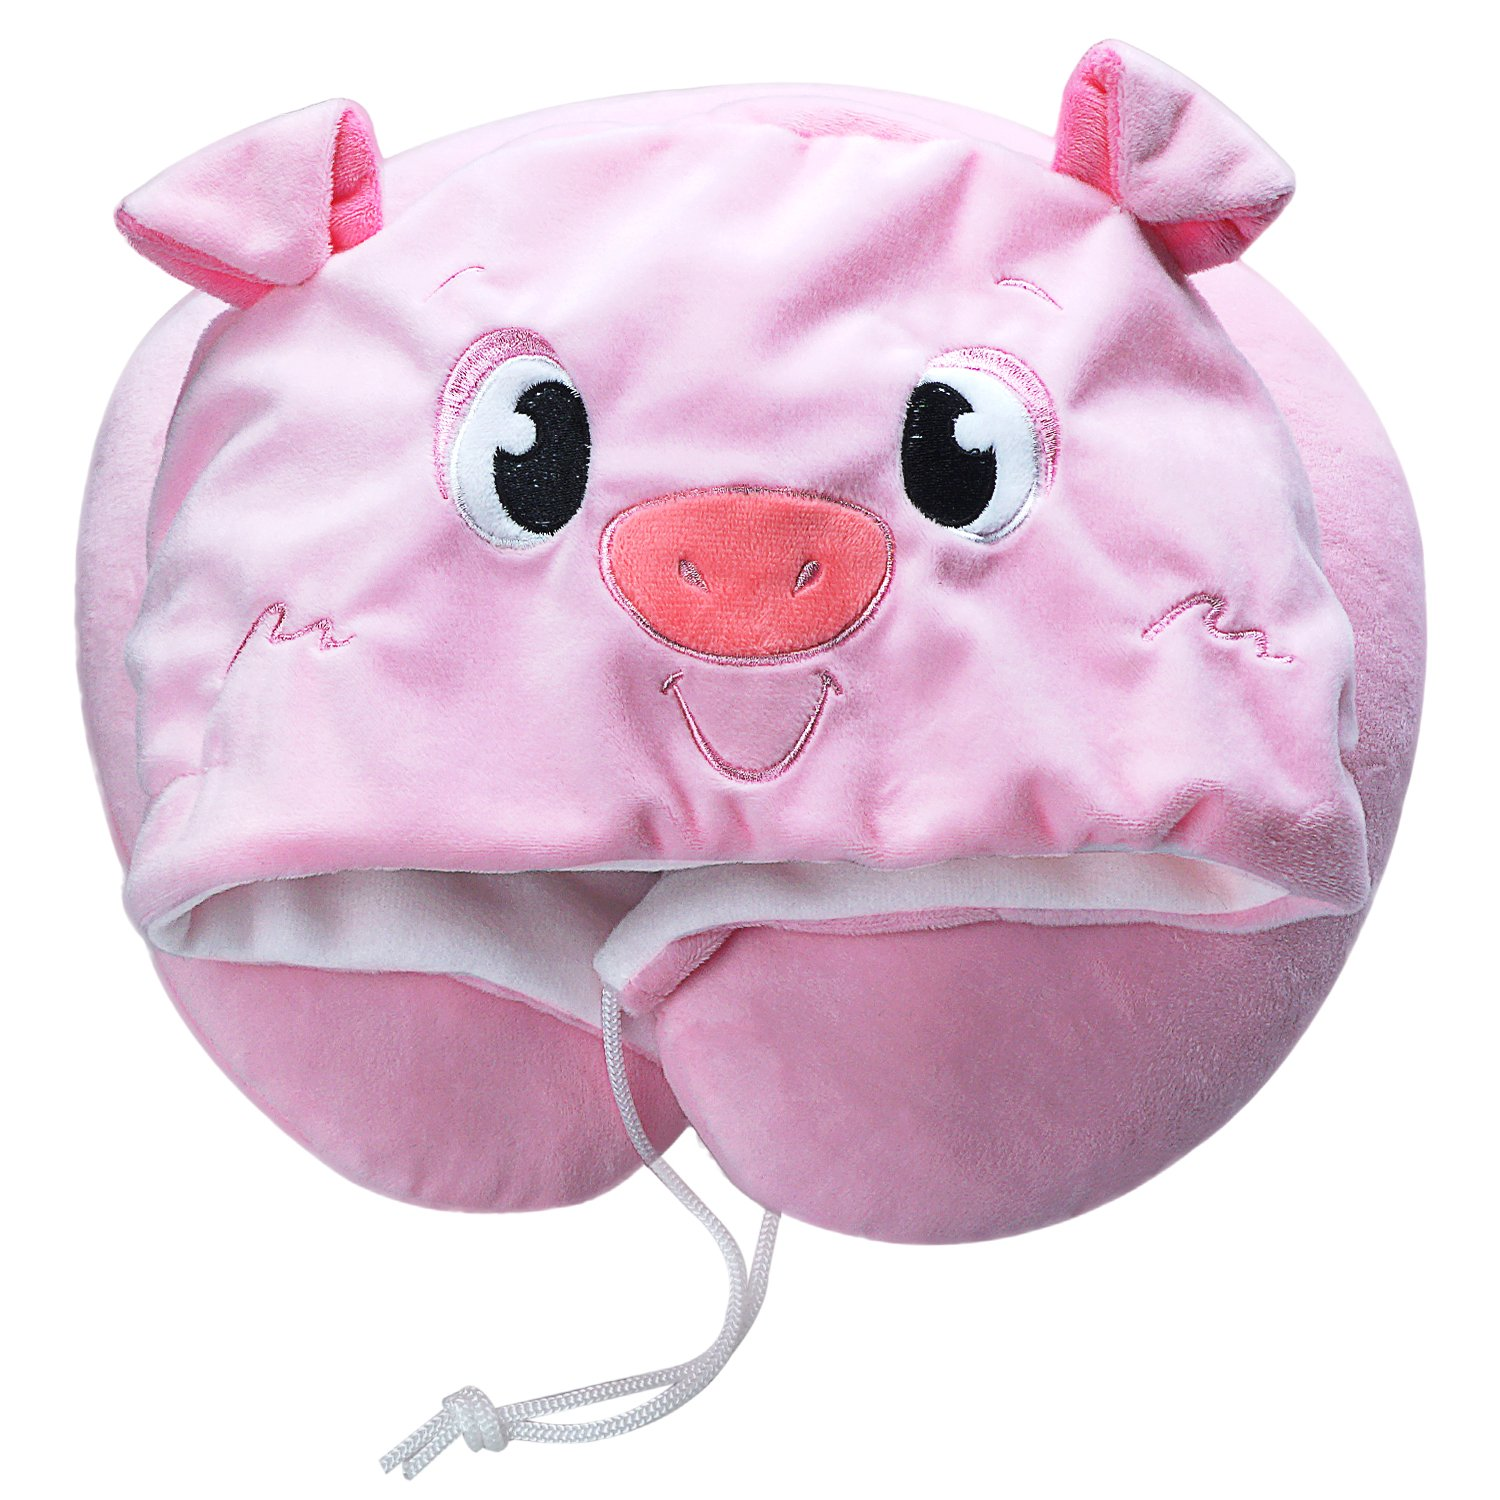 LOVOUS Cute Cartoon Animal Hooded Travel Neck Support Pillow Soft Plush Toy Comfortable U Shaped Pillow with Hat for Airplane, Office (Pink Pig) by LOVOUS (Image #1)